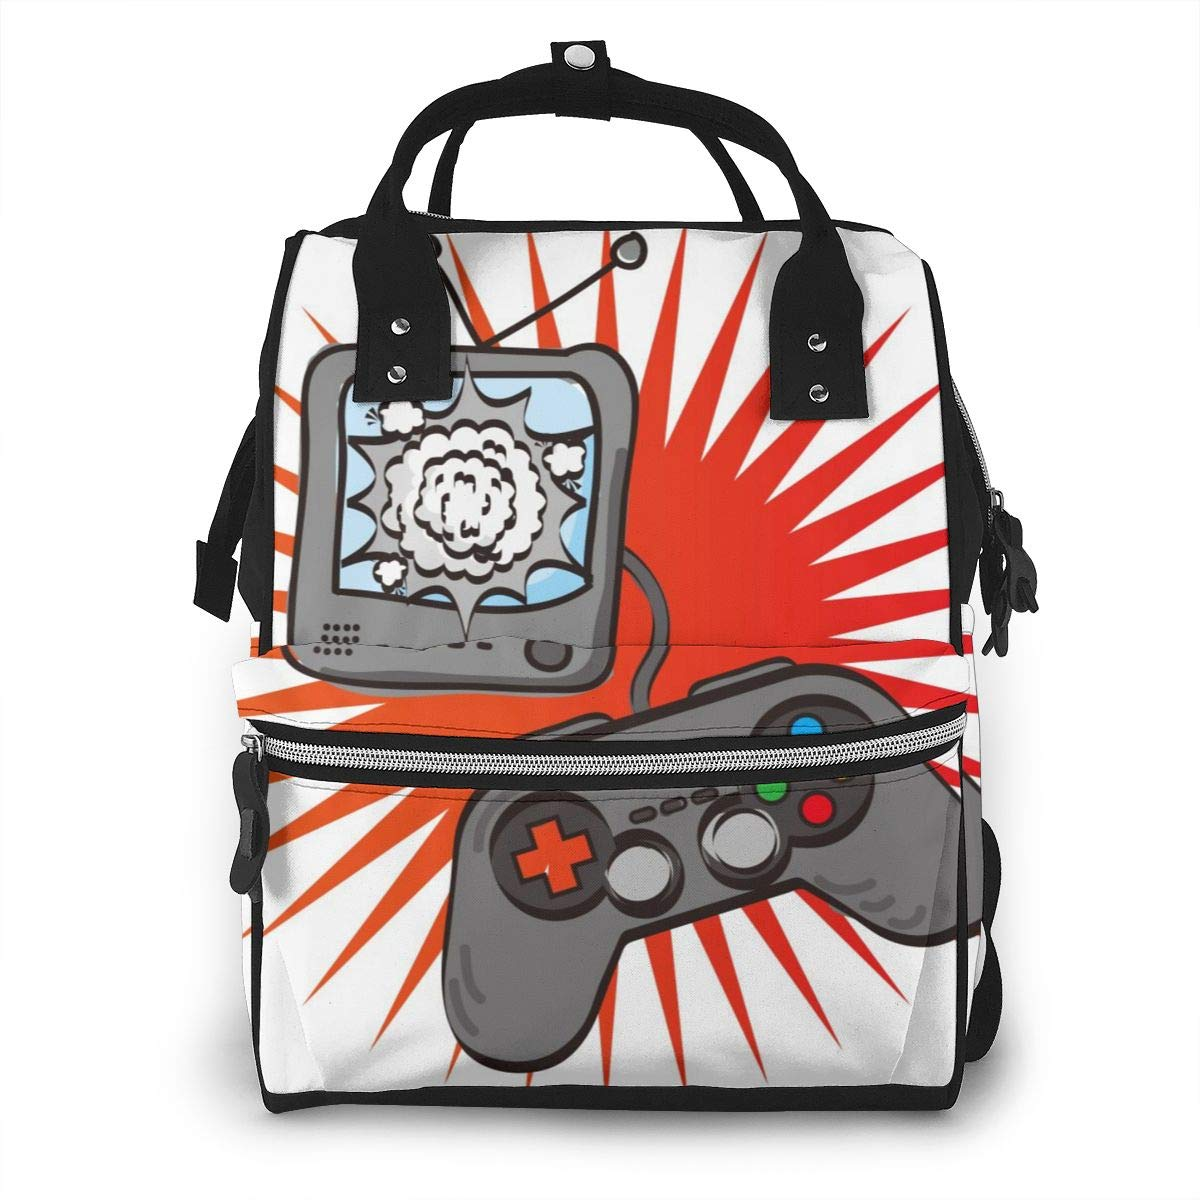 Diaper Bag Backpack Travel Bag Large Multifunction Waterproof Video Games Stylish and Durable Nappy Bag for Baby Care School Backpack